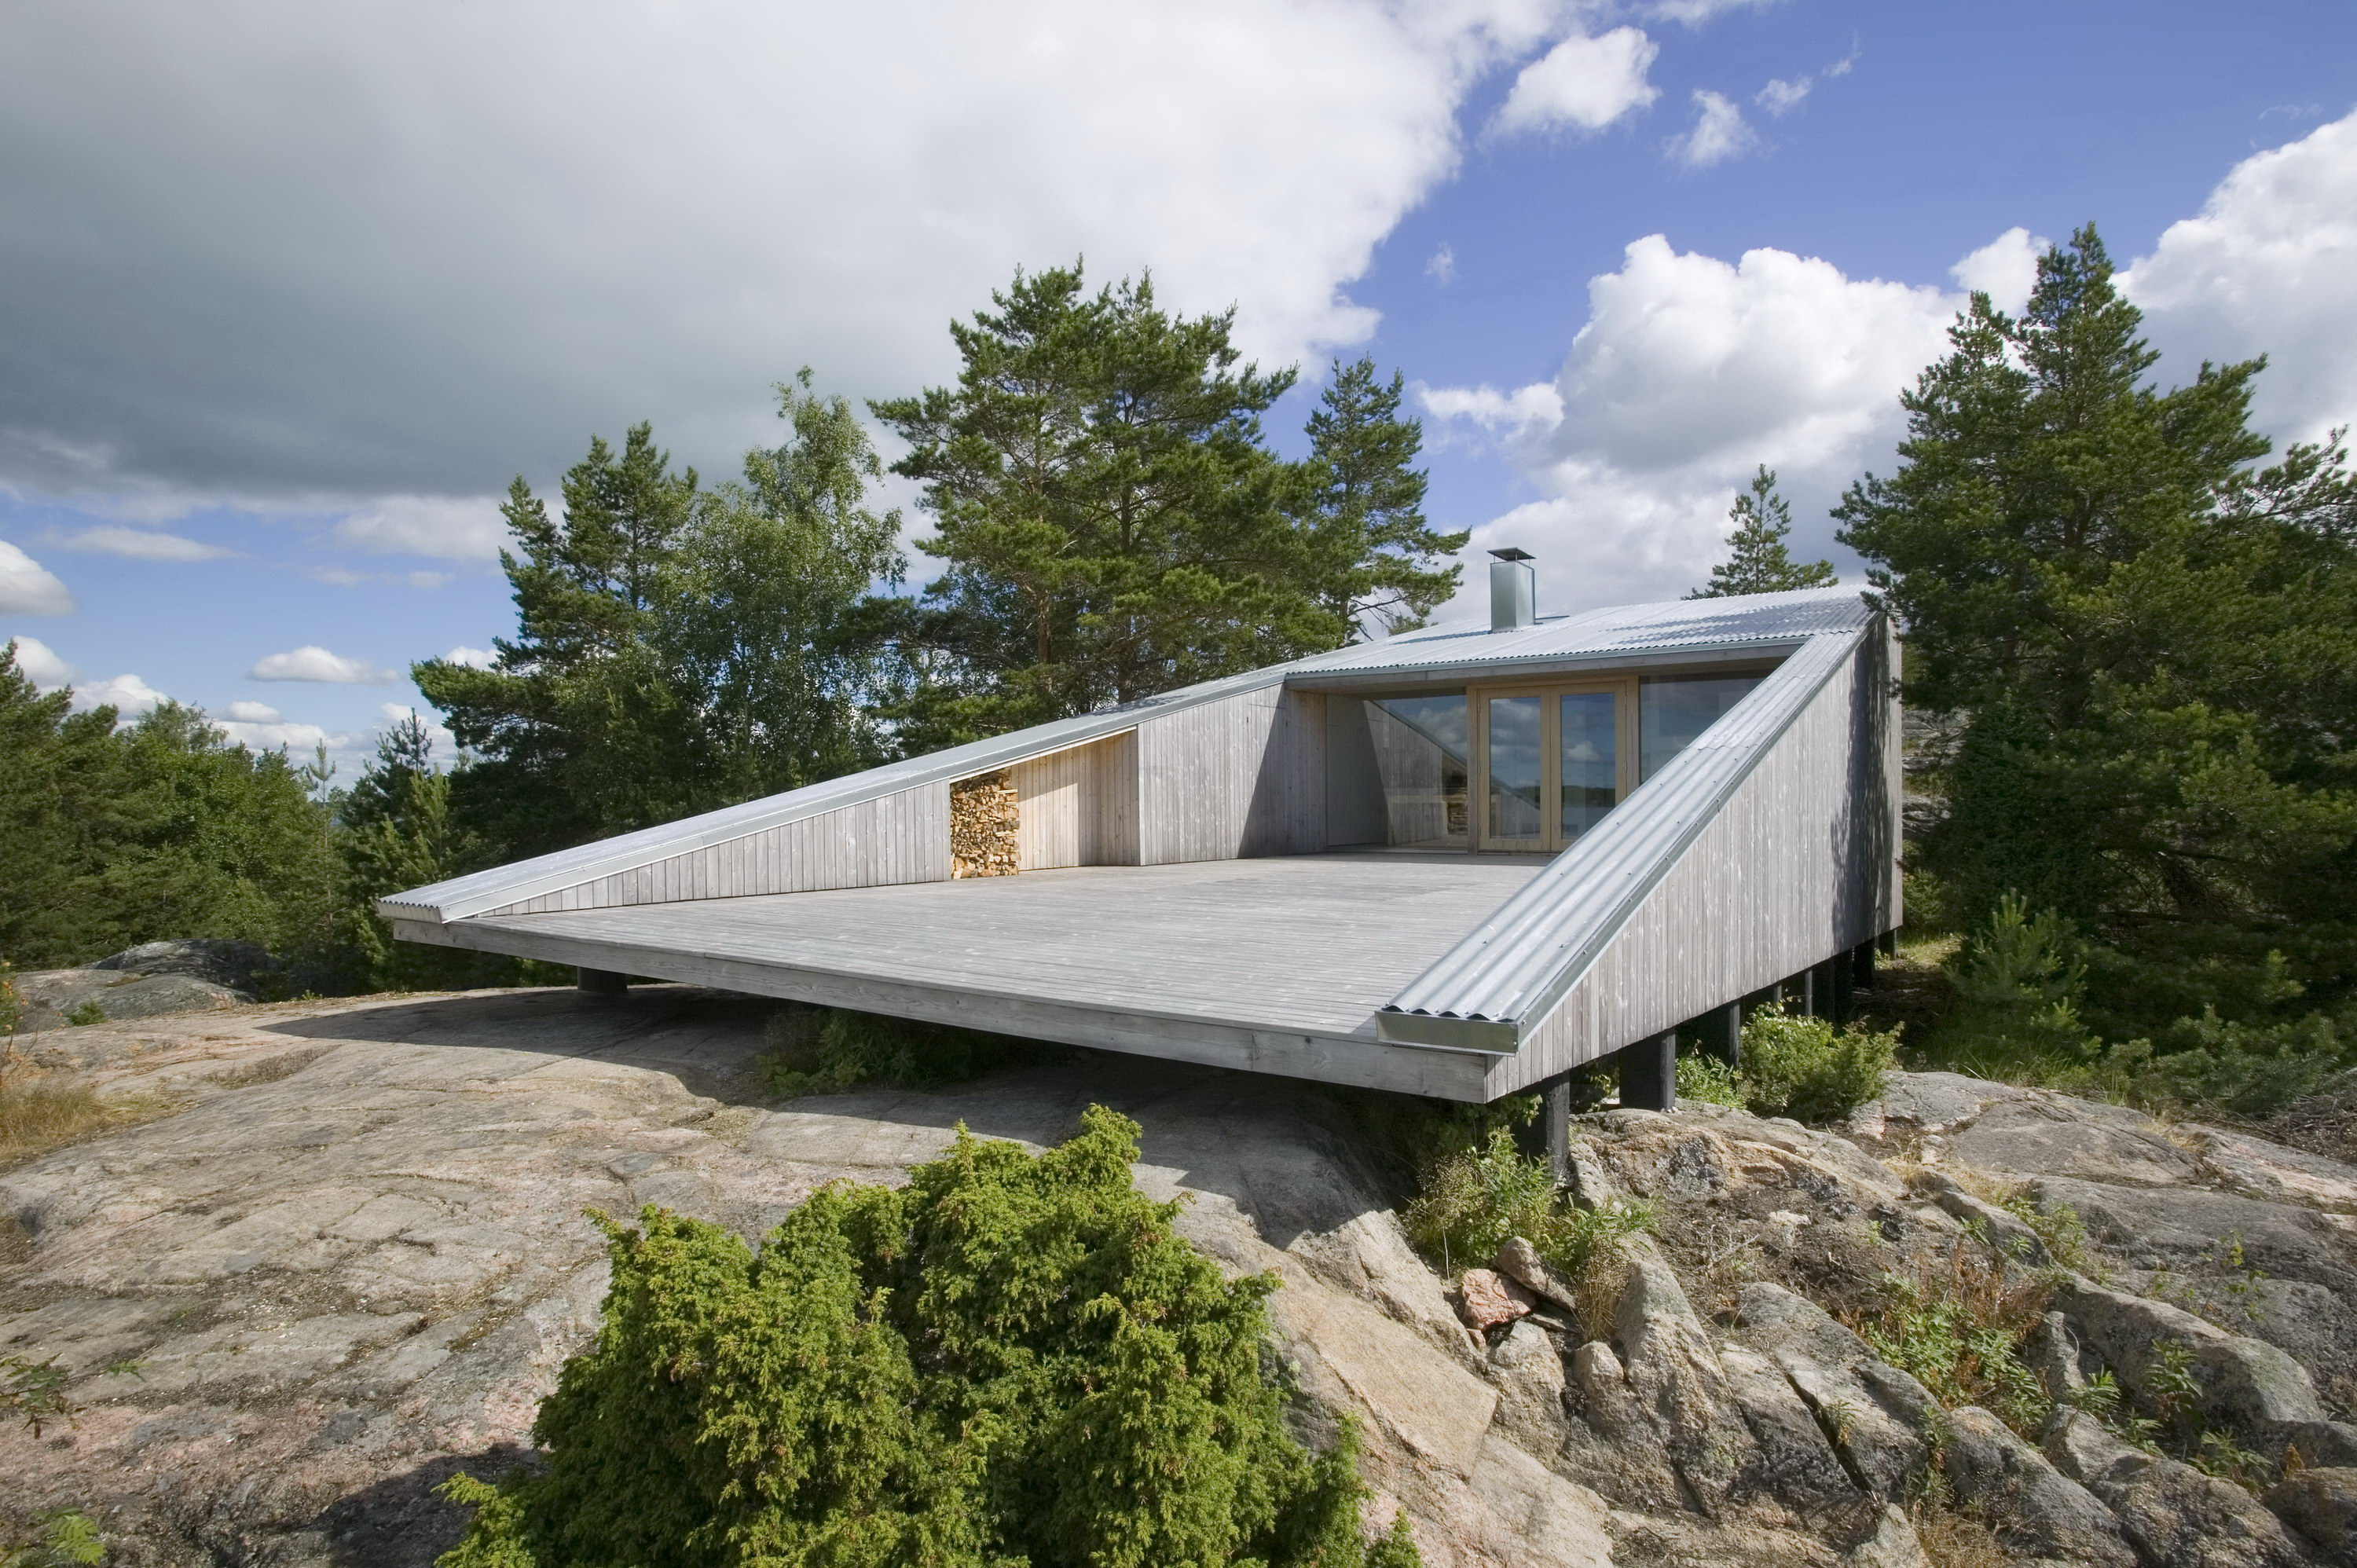 Villa Mecklin by Huttunen-Lipasti Architects